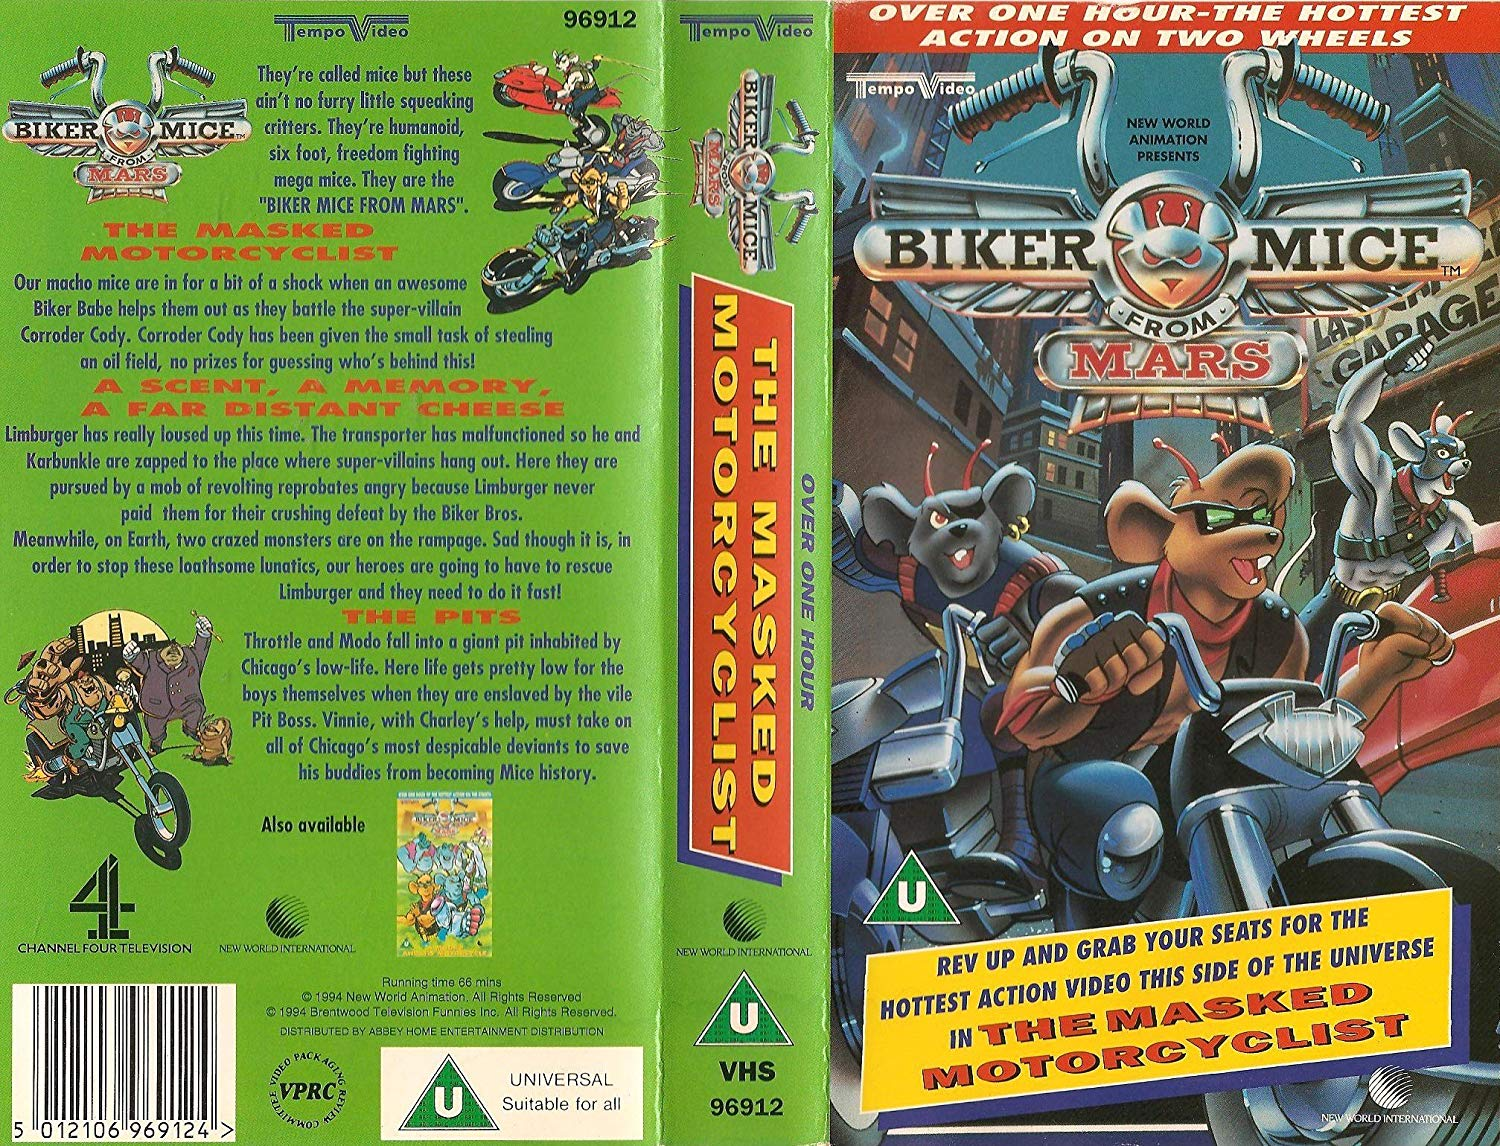 Biker Mice From Mars - The Masked Motorcyclist